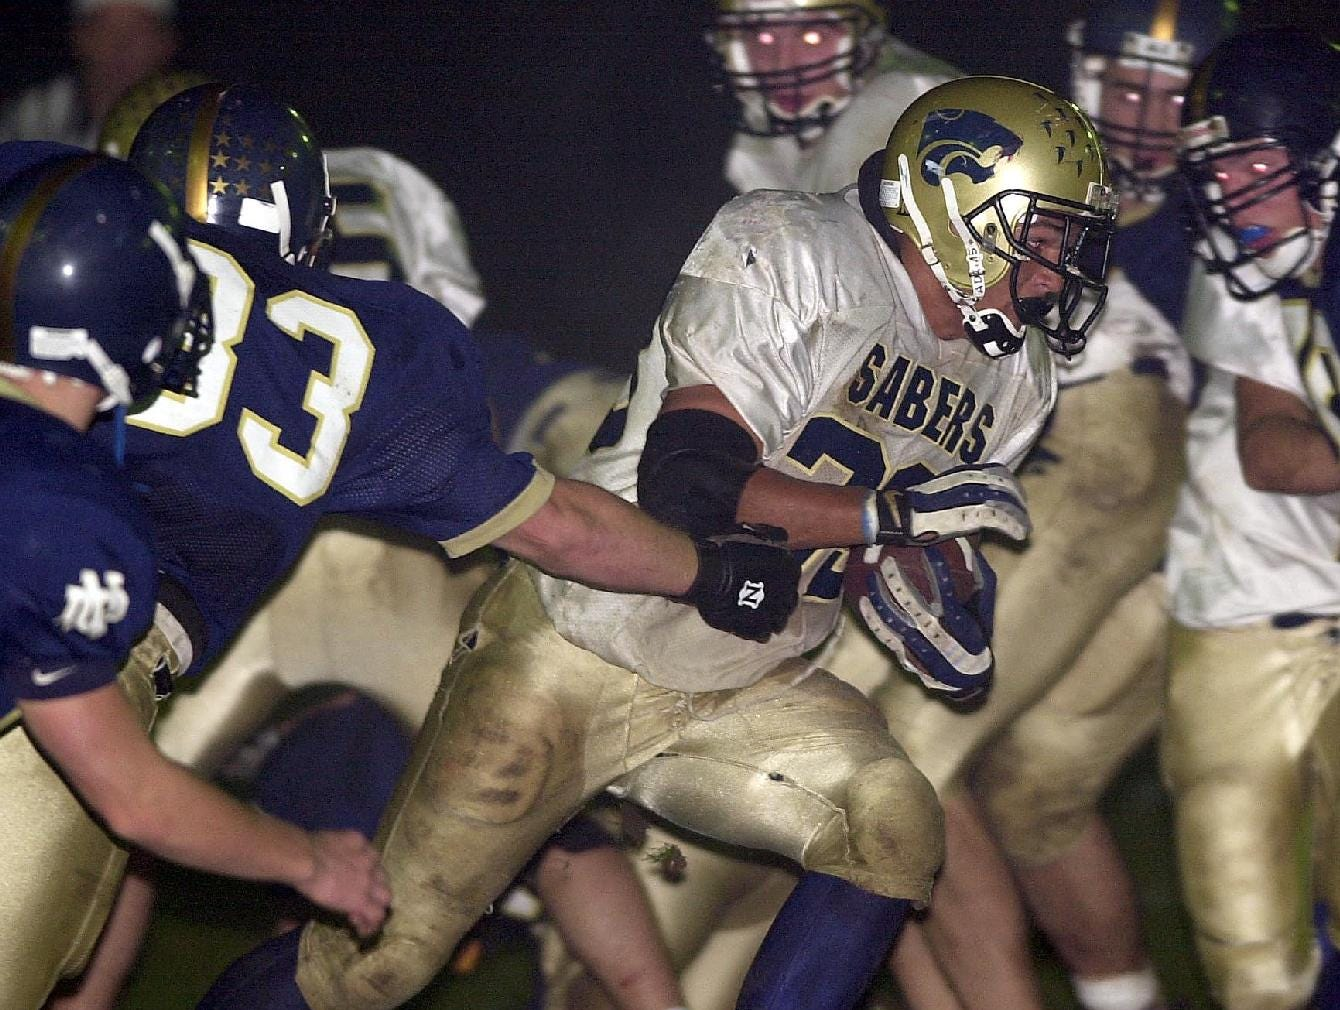 From 1999: Susquehanna Valley's 33, escapes a pack of Notre Dame defenders as he picks up a few yards bringing up second and 2 with 9:02 left in the first quarter of Friday night's game in Elmira.